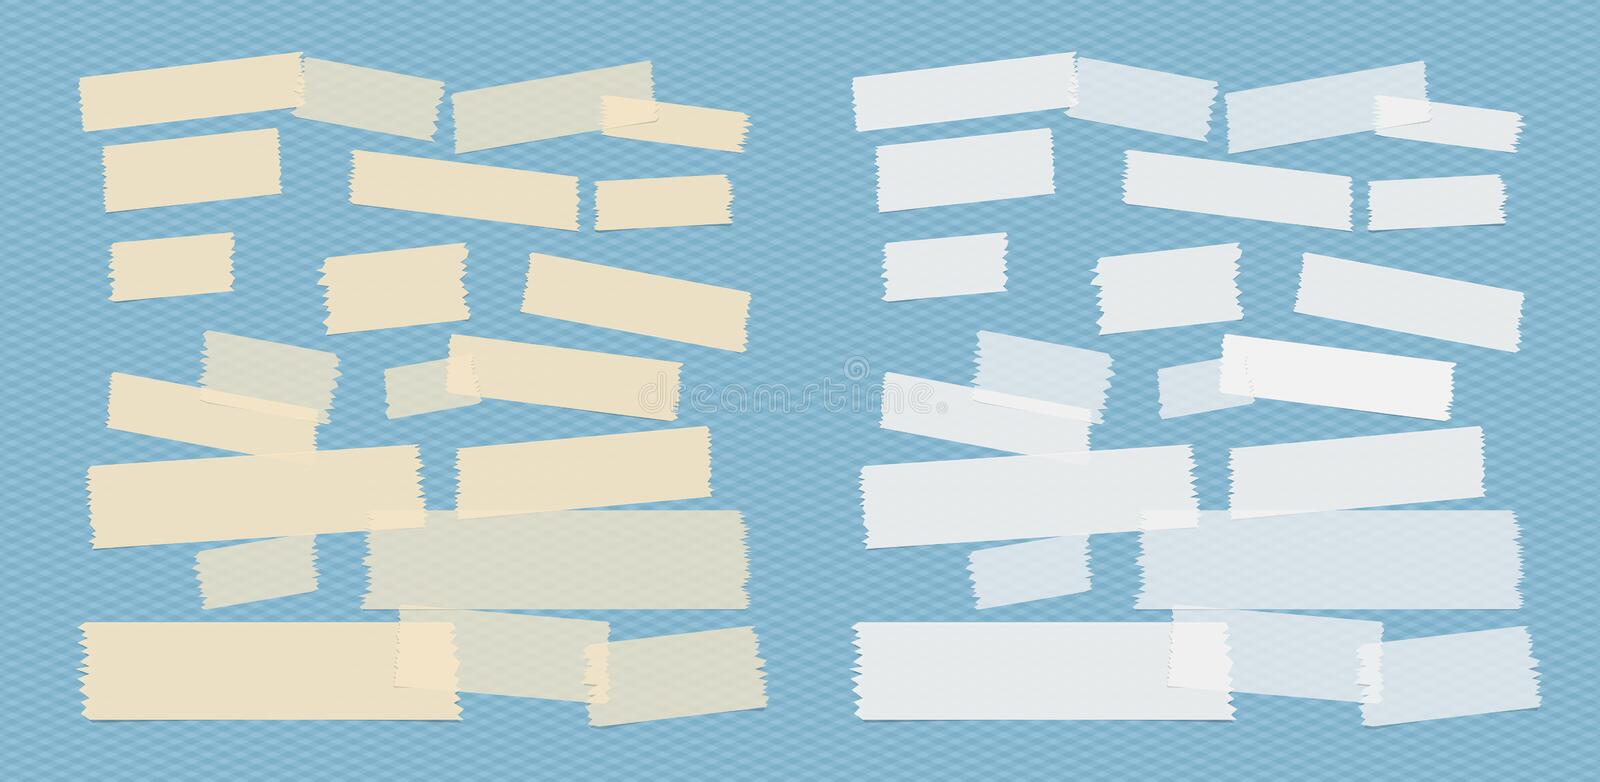 Sticky adhesive paper strips, masking tape, stuck on blue squared background.  royalty free illustration